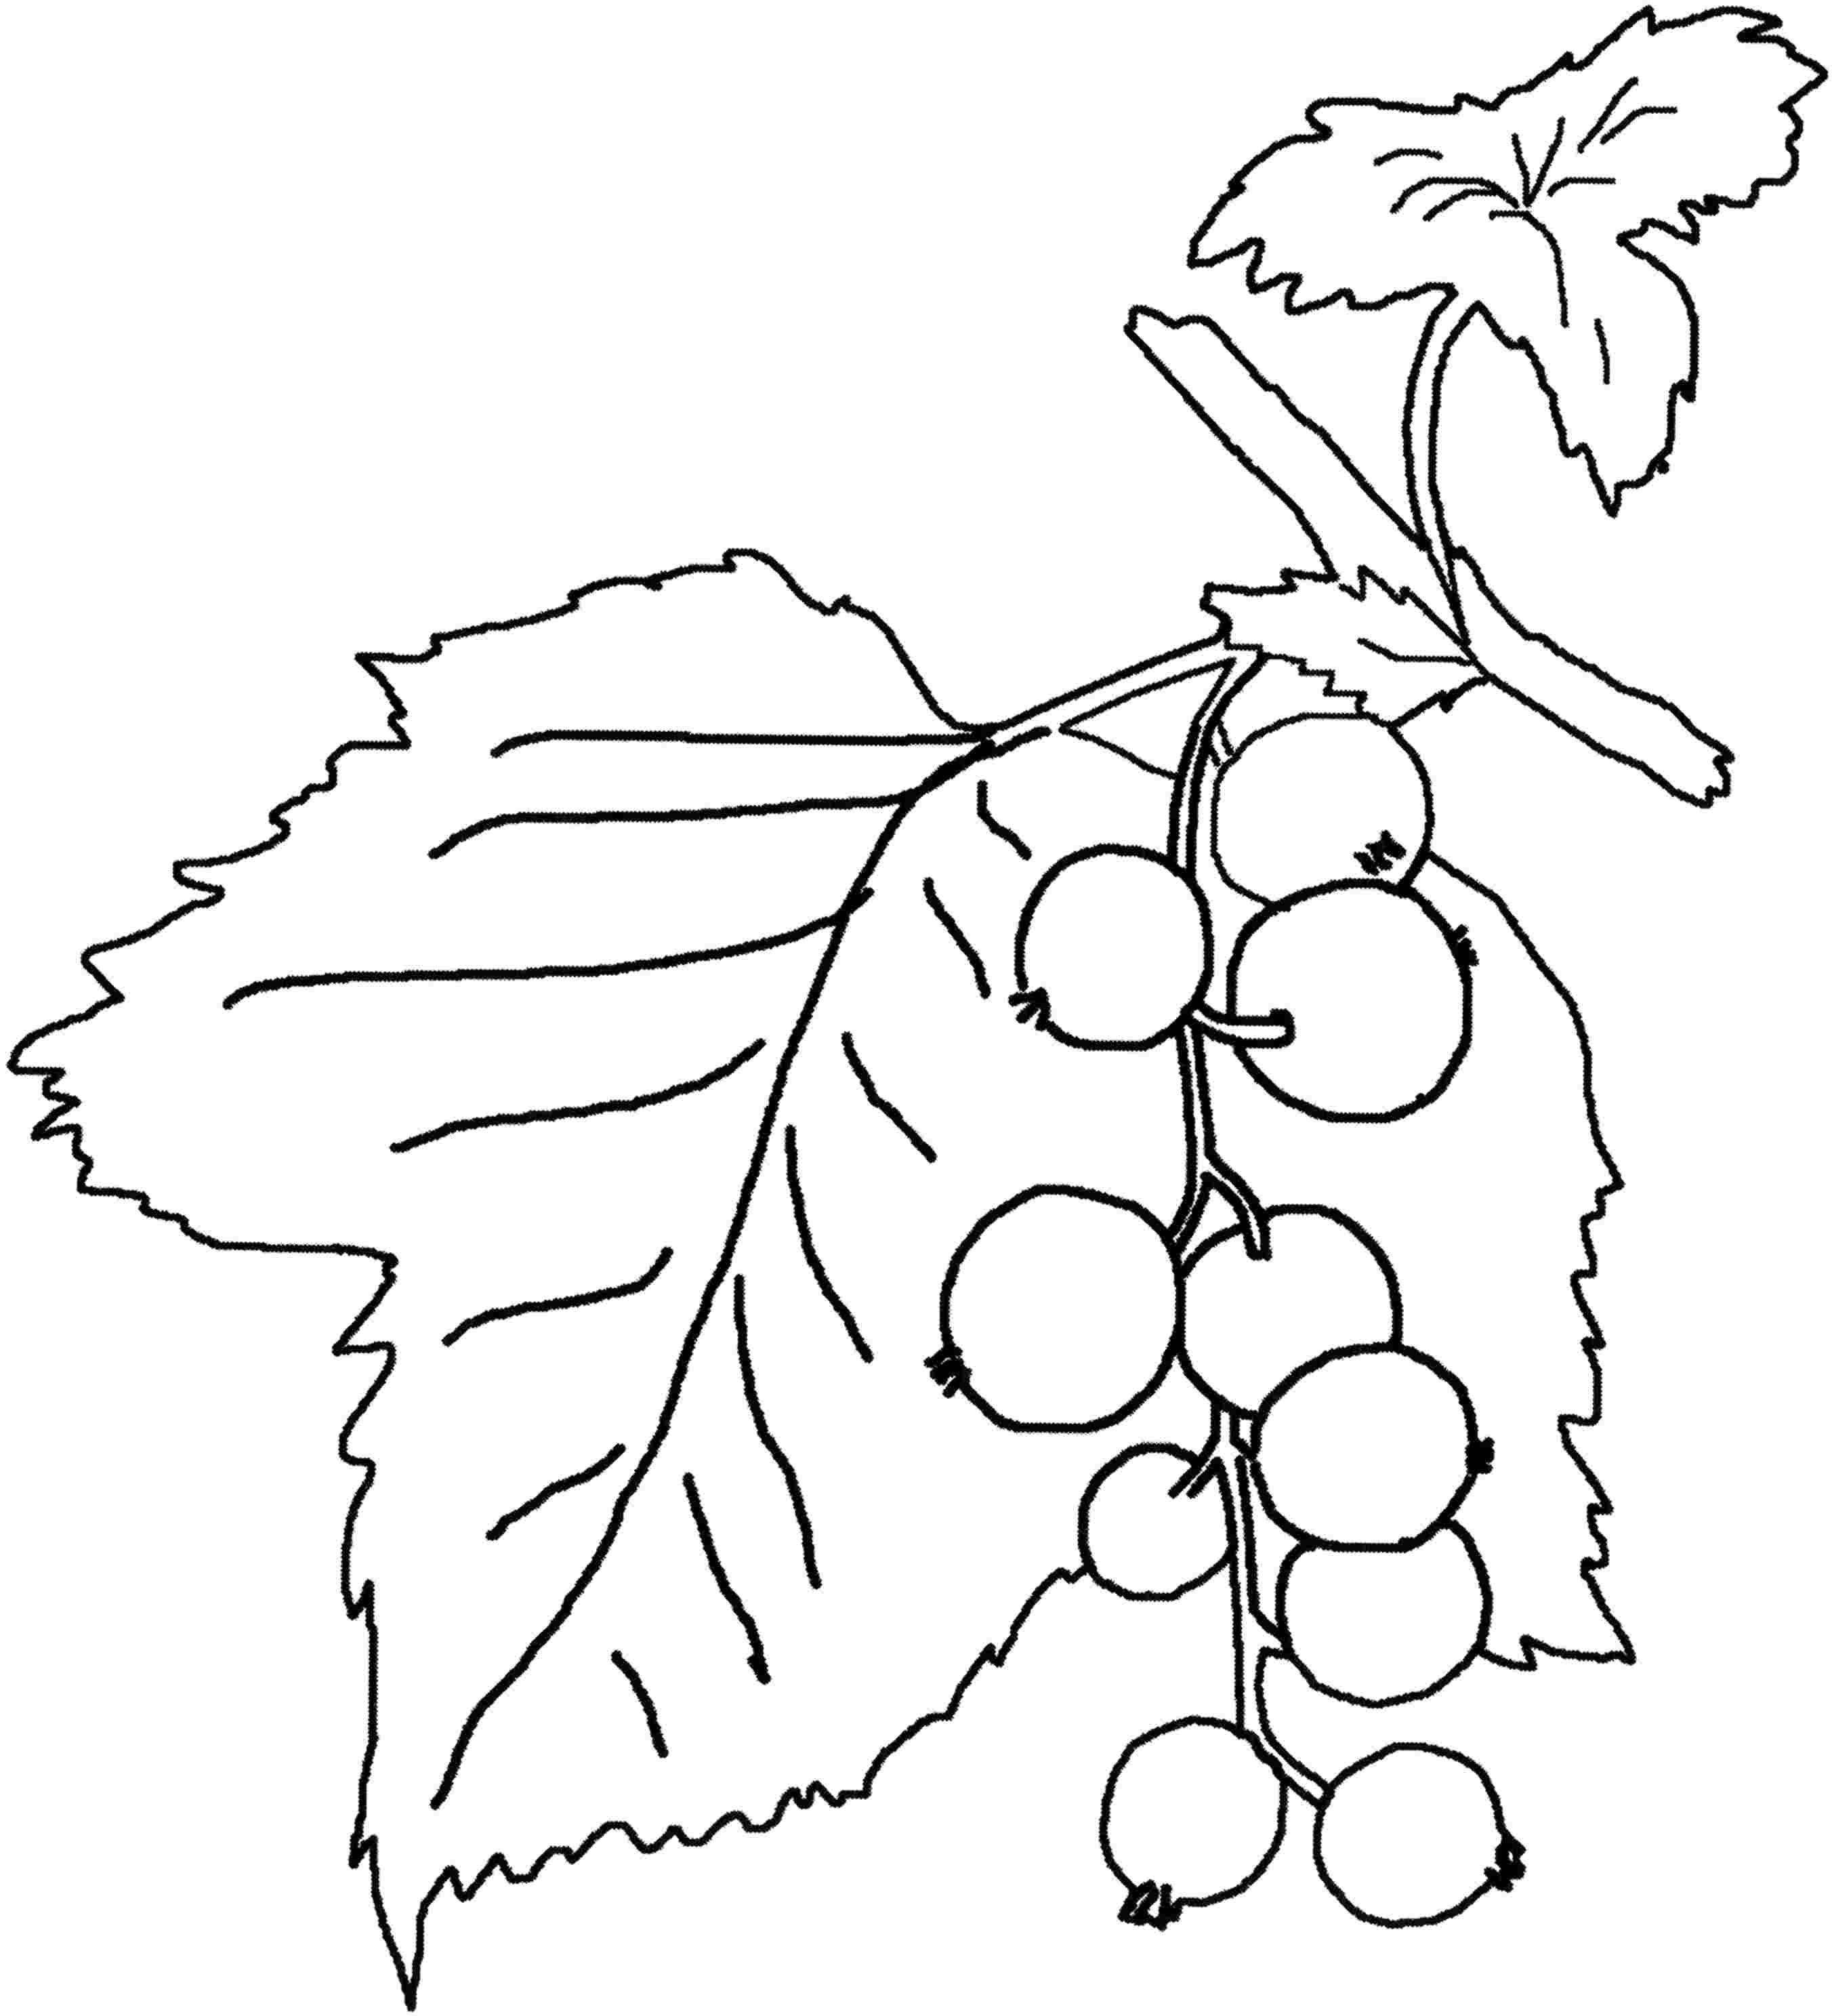 Blueberry coloring page coloring home Blueberry Bush Fall Plum Coloring Page Popsicle Stick Coloring Page